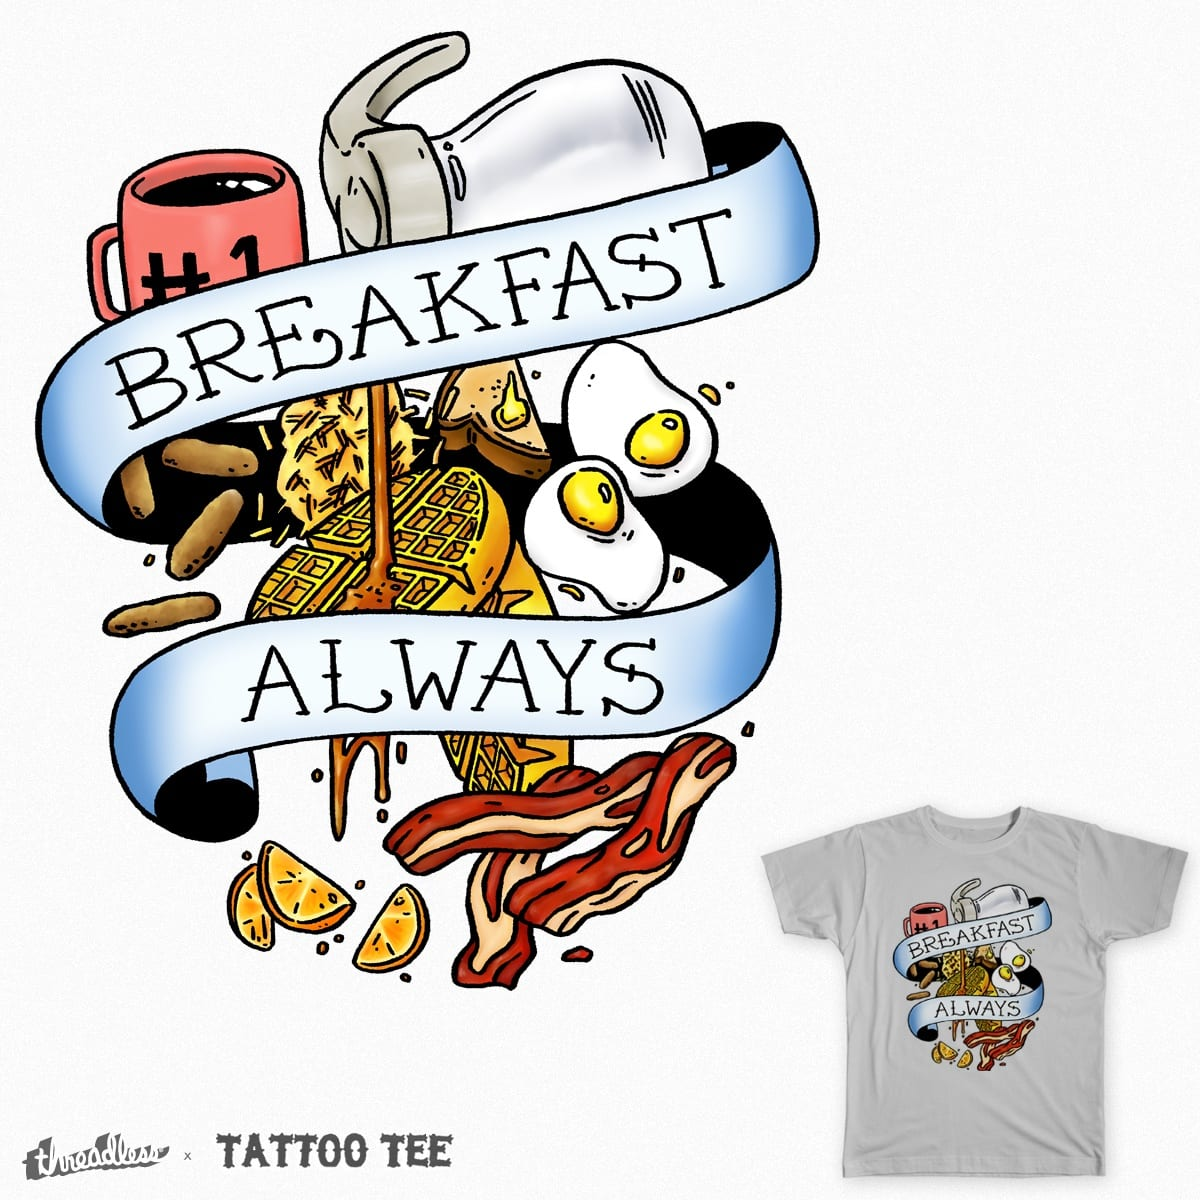 Eat Hardy by mike bautista and Orbanya on Threadless